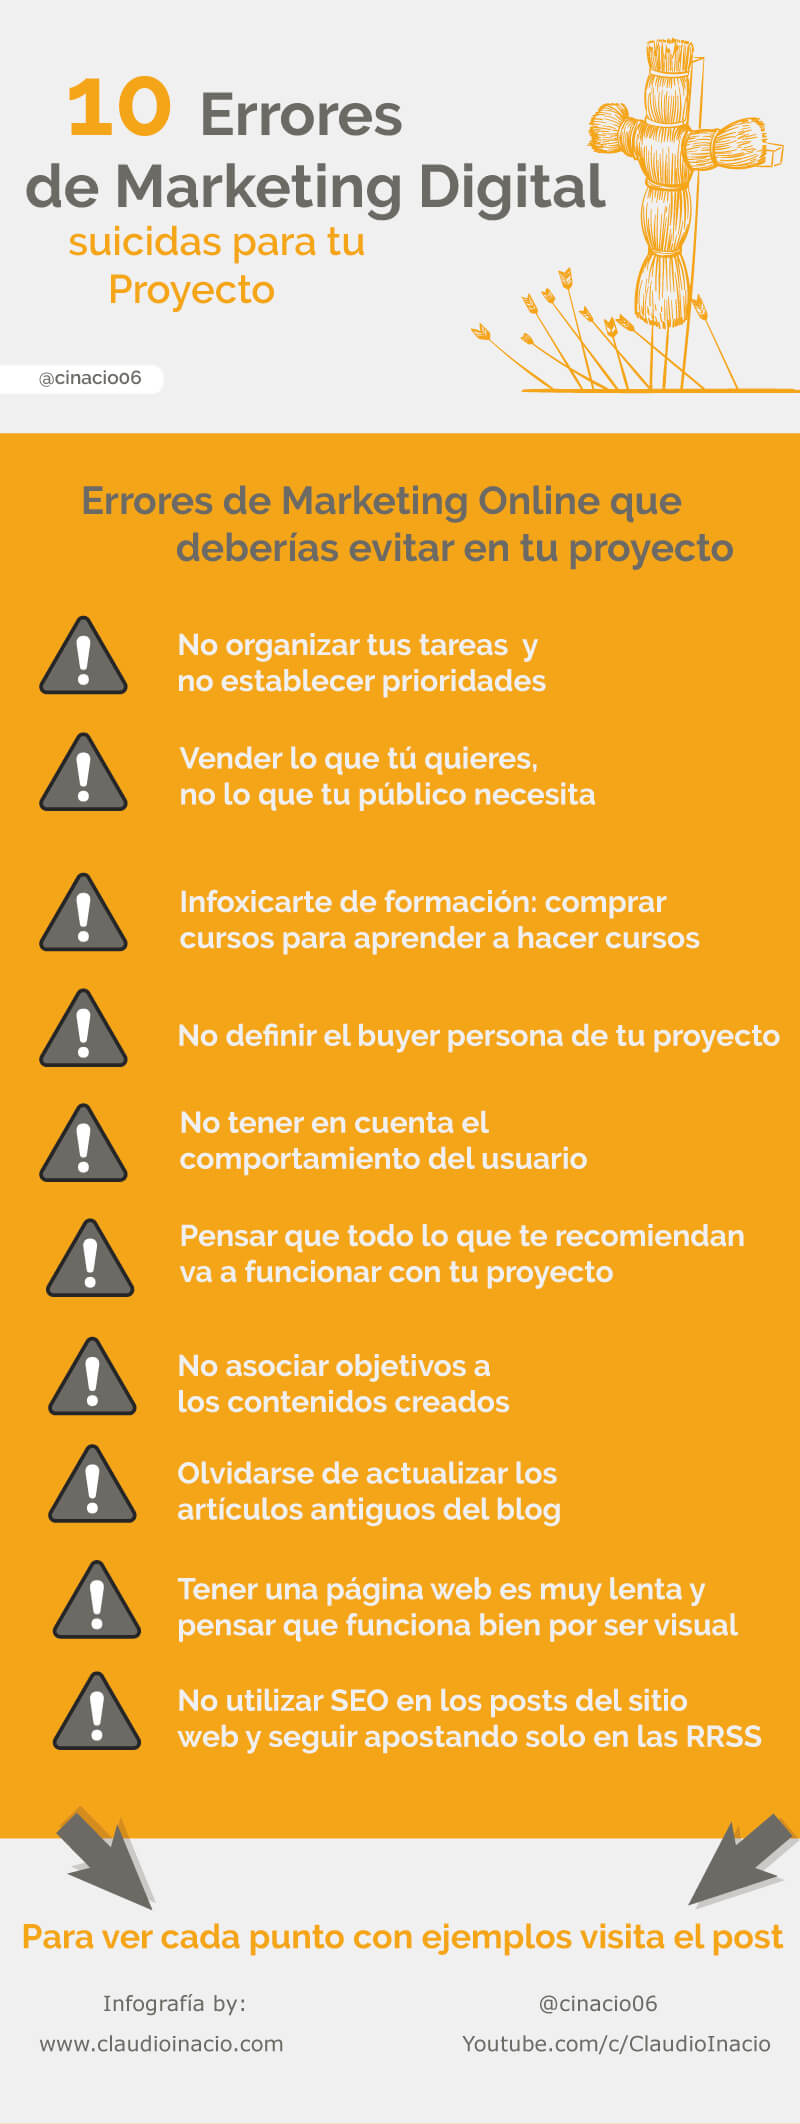 10 errores en Marketing Digital